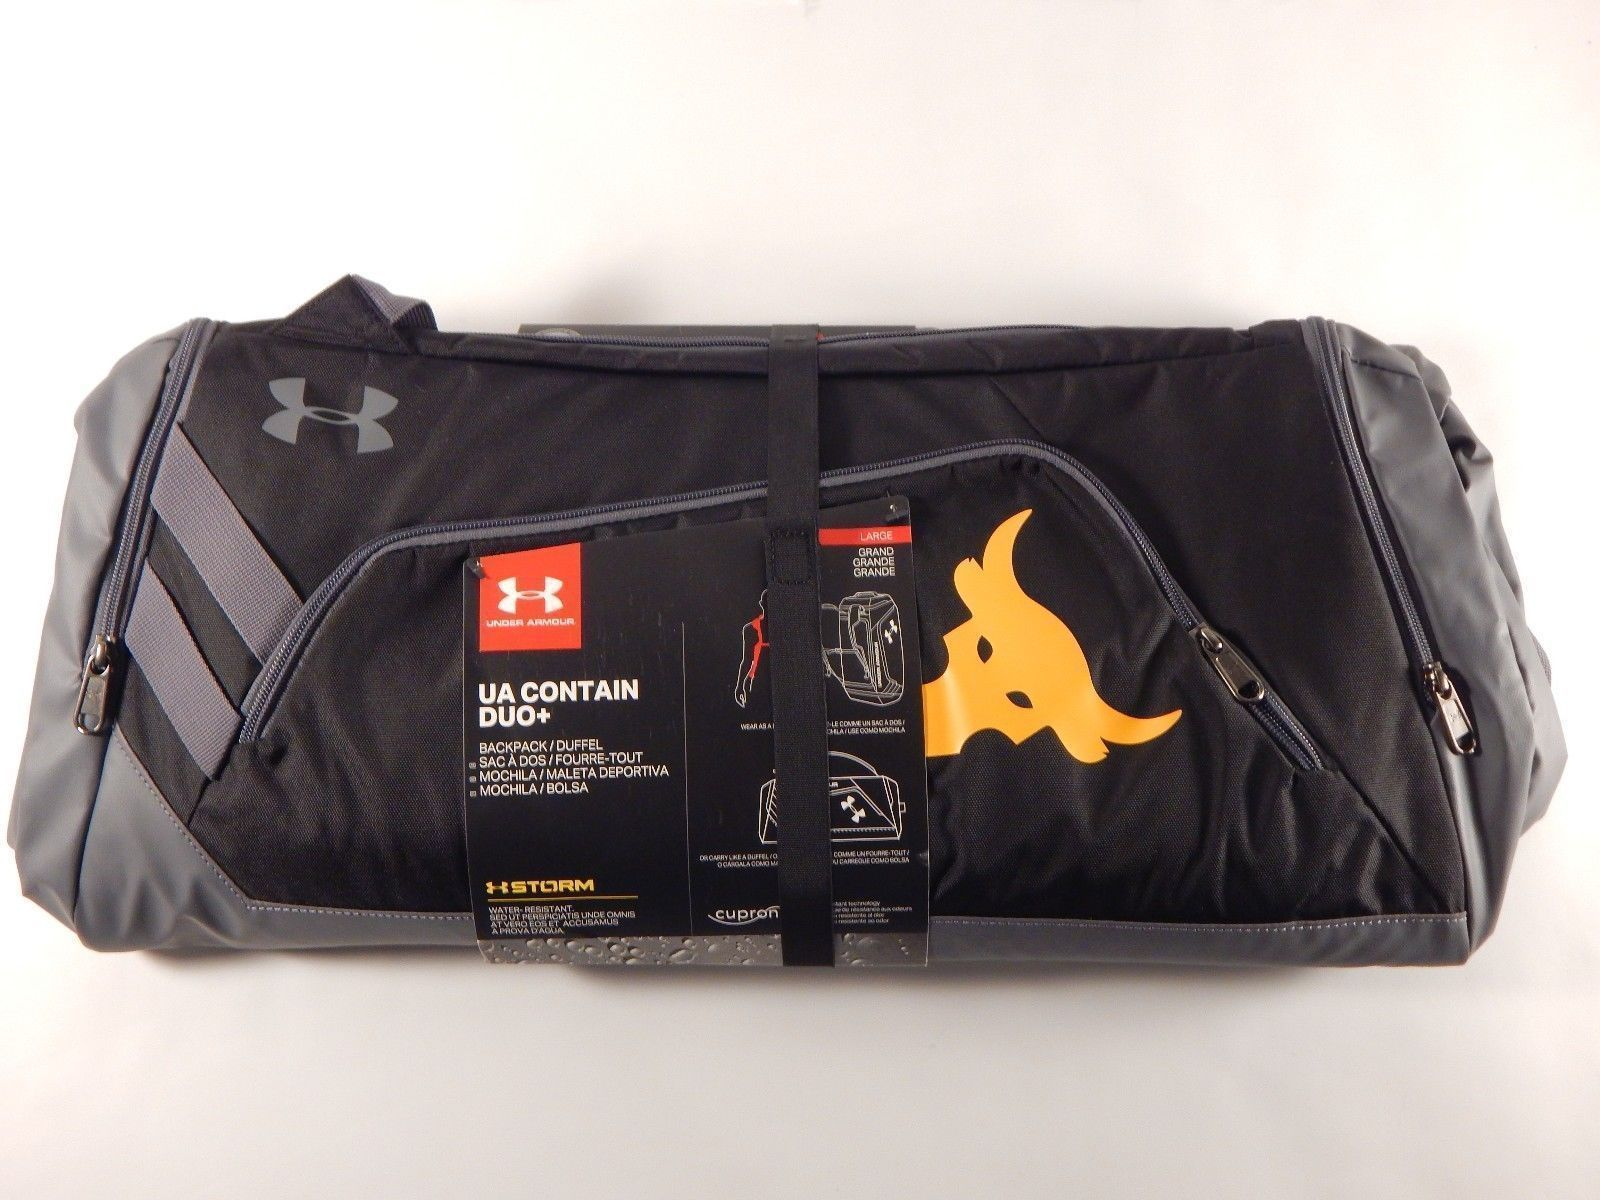 Under Armour X Project Rock UA Contain Duo+ and 11 similar items. 57 ecd619b05f4aa